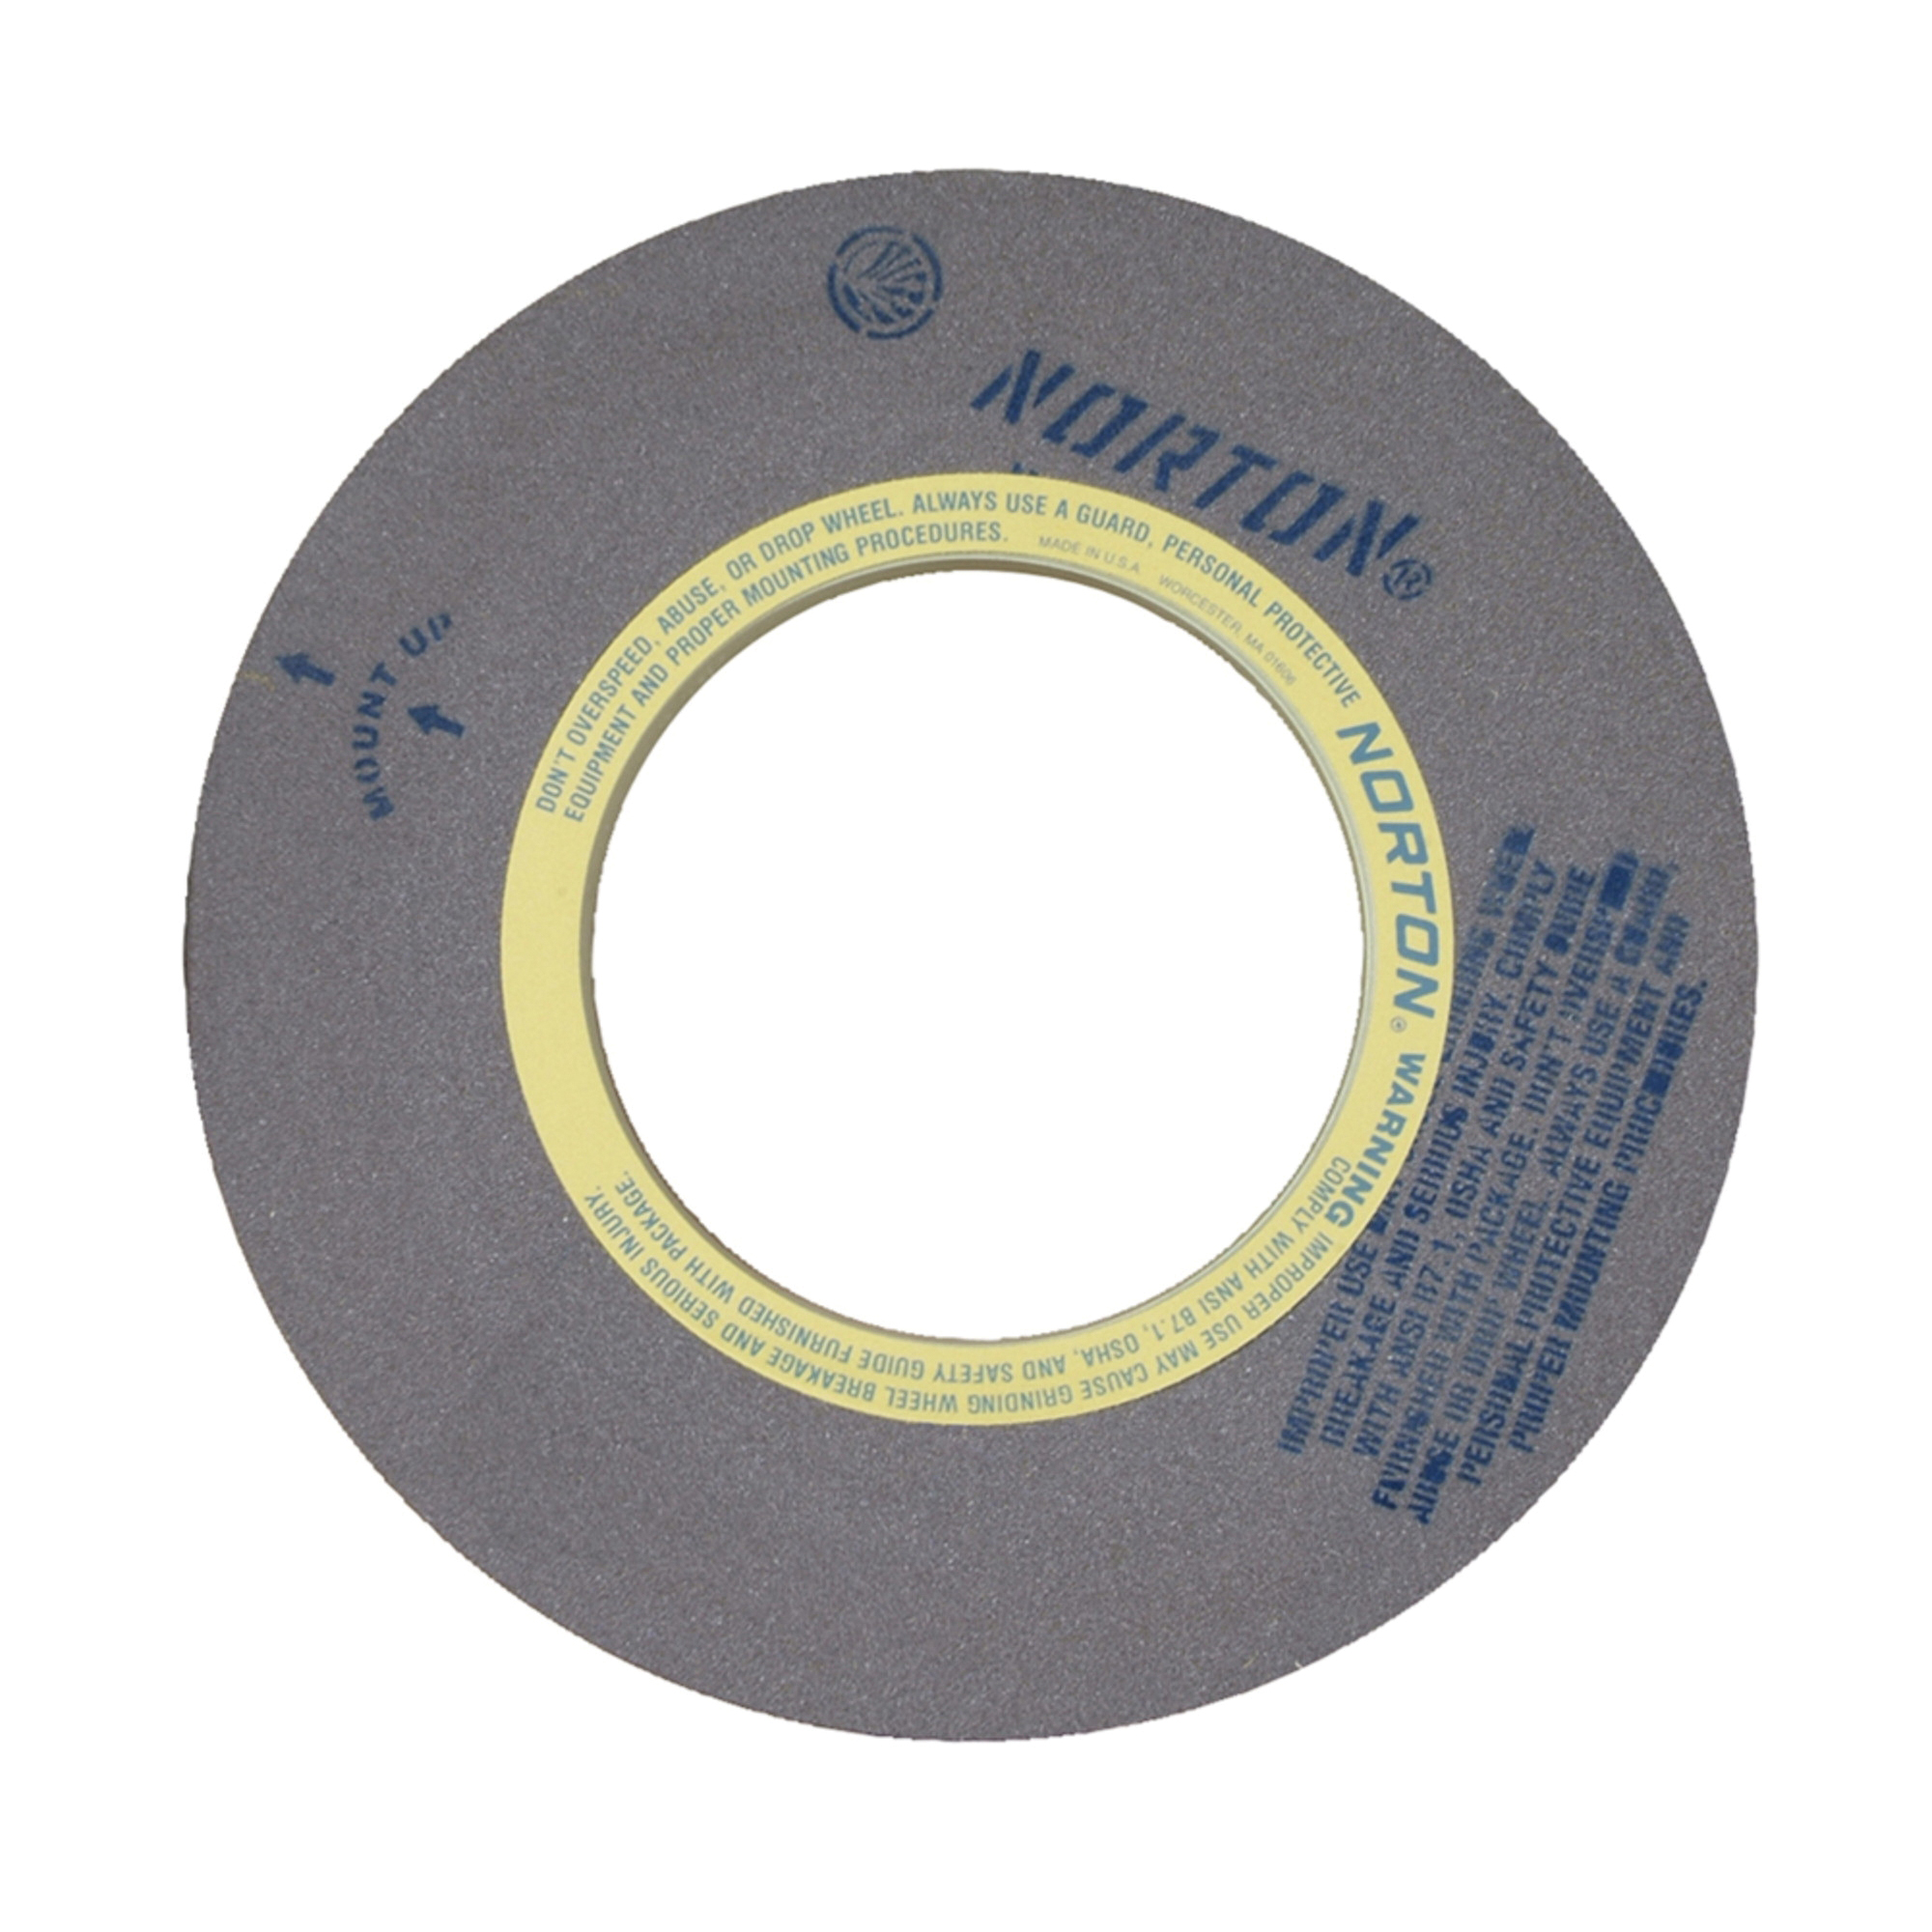 Norton® 69078666749 64A Centerless Grinding Wheel, 20 in Dia x 8 in THK, 12 in Center Hole, 60 Grit, Aluminum Oxide Abrasive